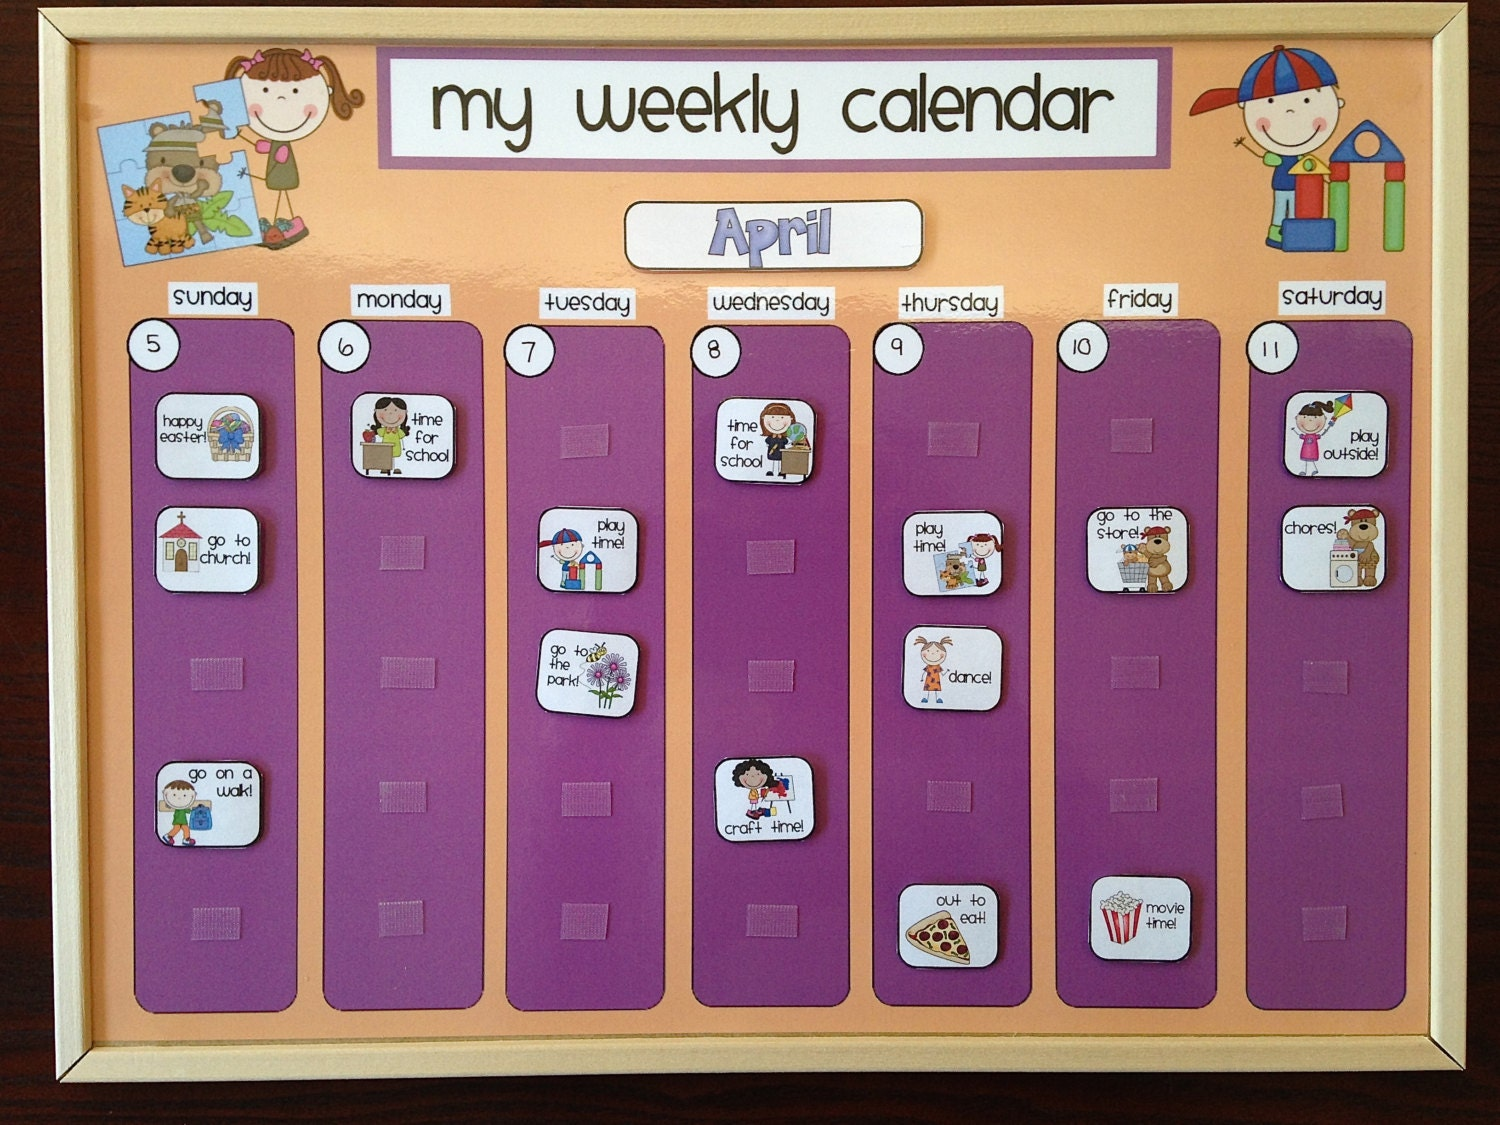 Weekly Calendar For Toddlers : Weekly kids calendar schedule activity chore chart